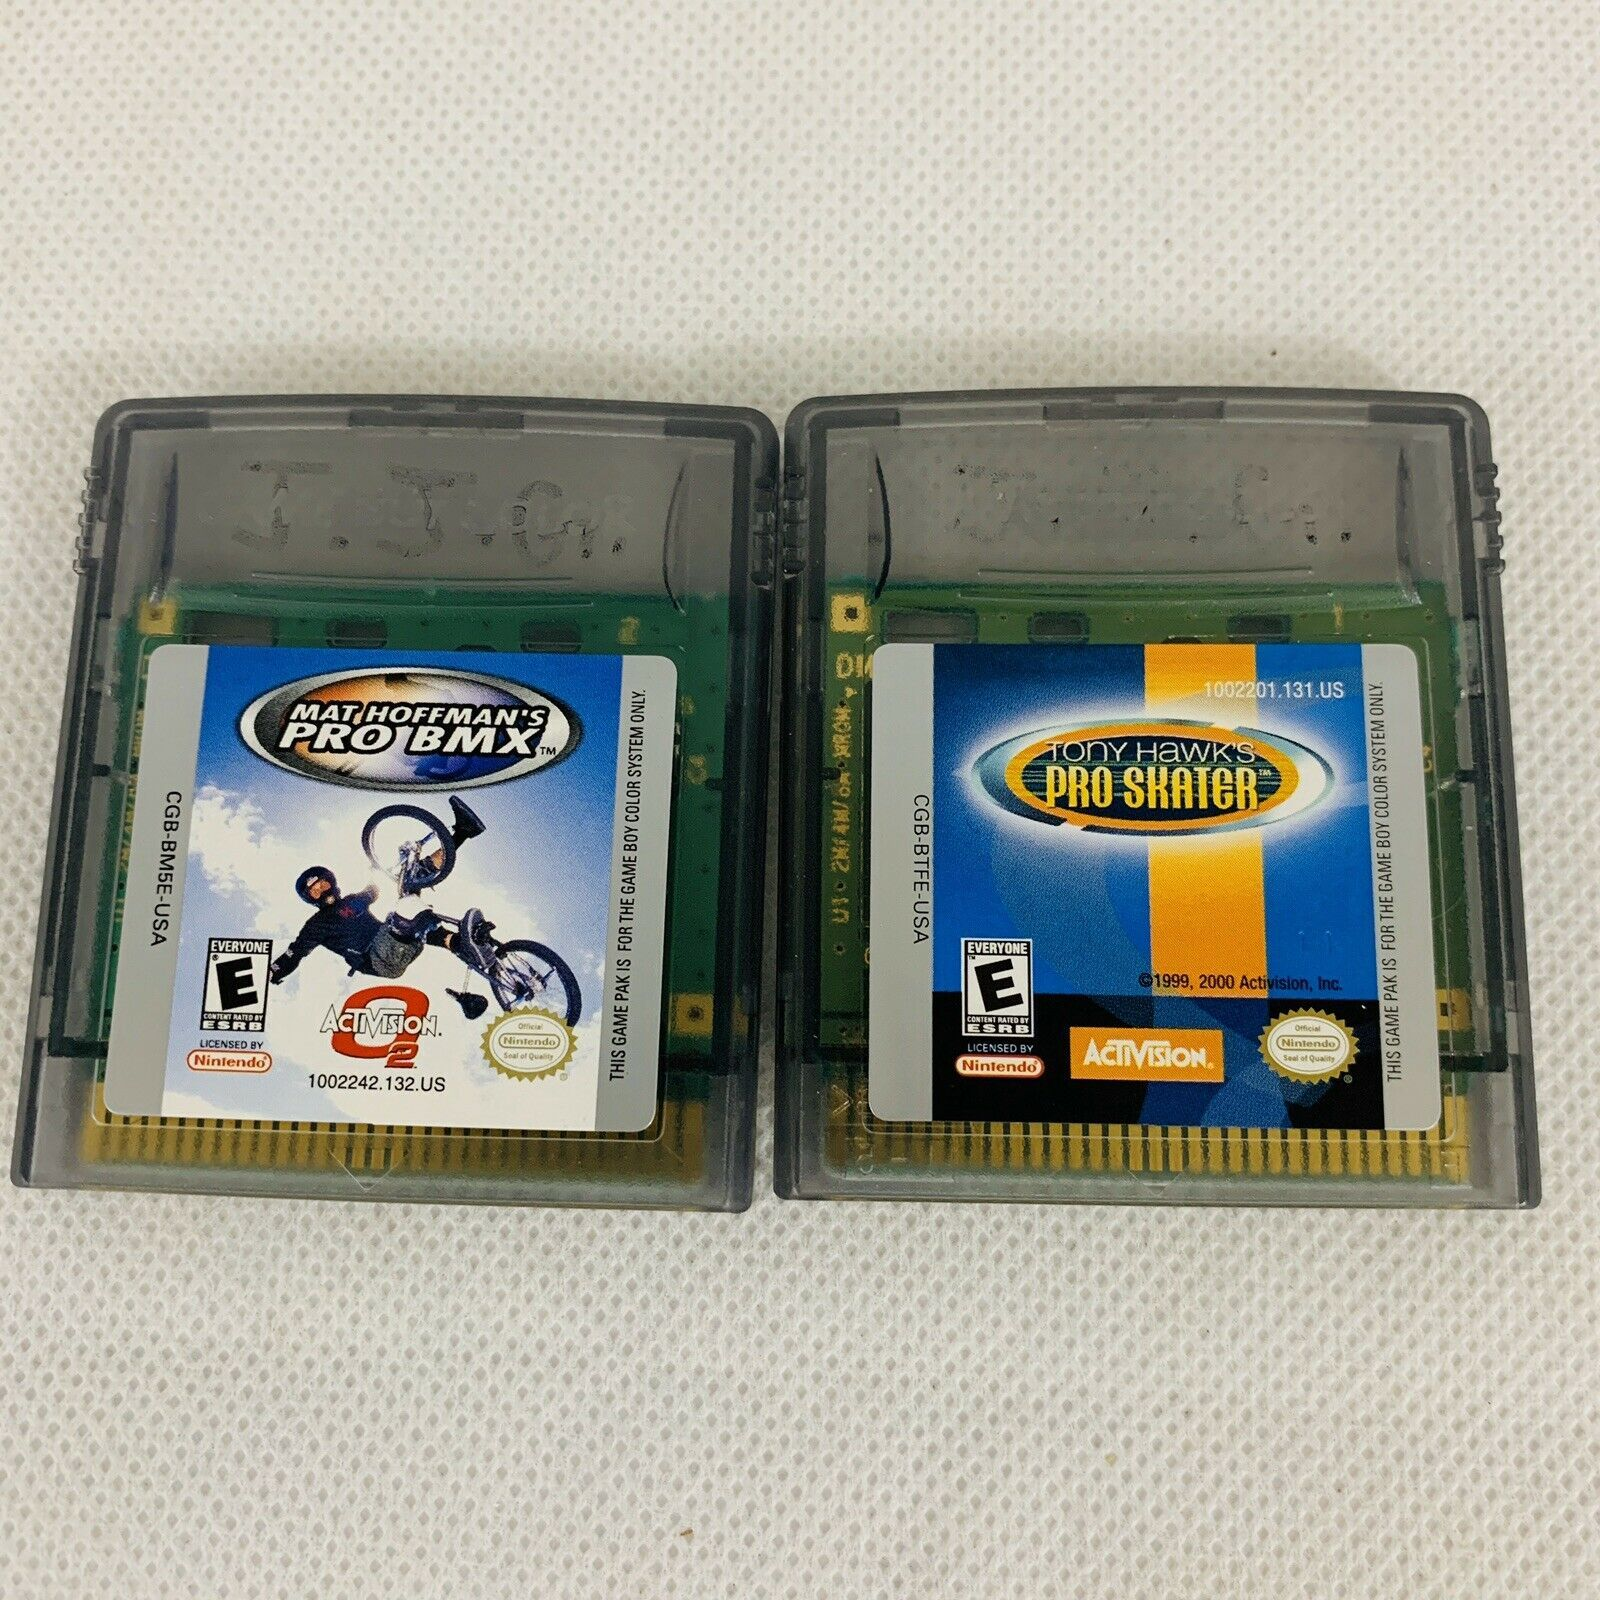 Lot of 2 Game Boy Color games - Dave Mirra BMX - Tony Hawk's Pro Skater